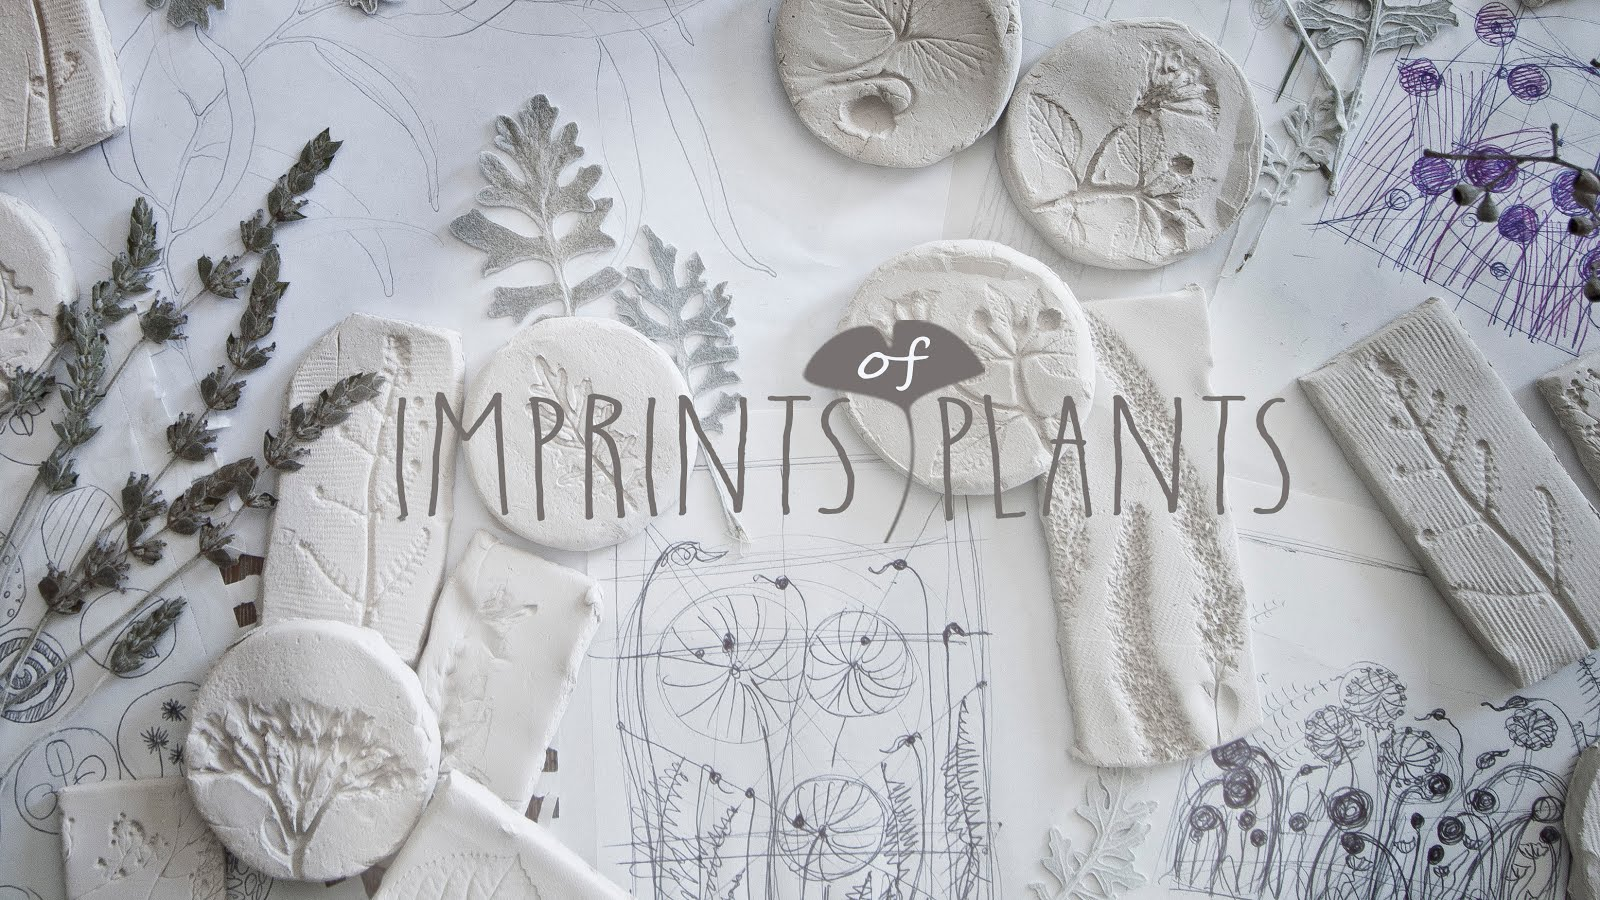 Imprints of Plants